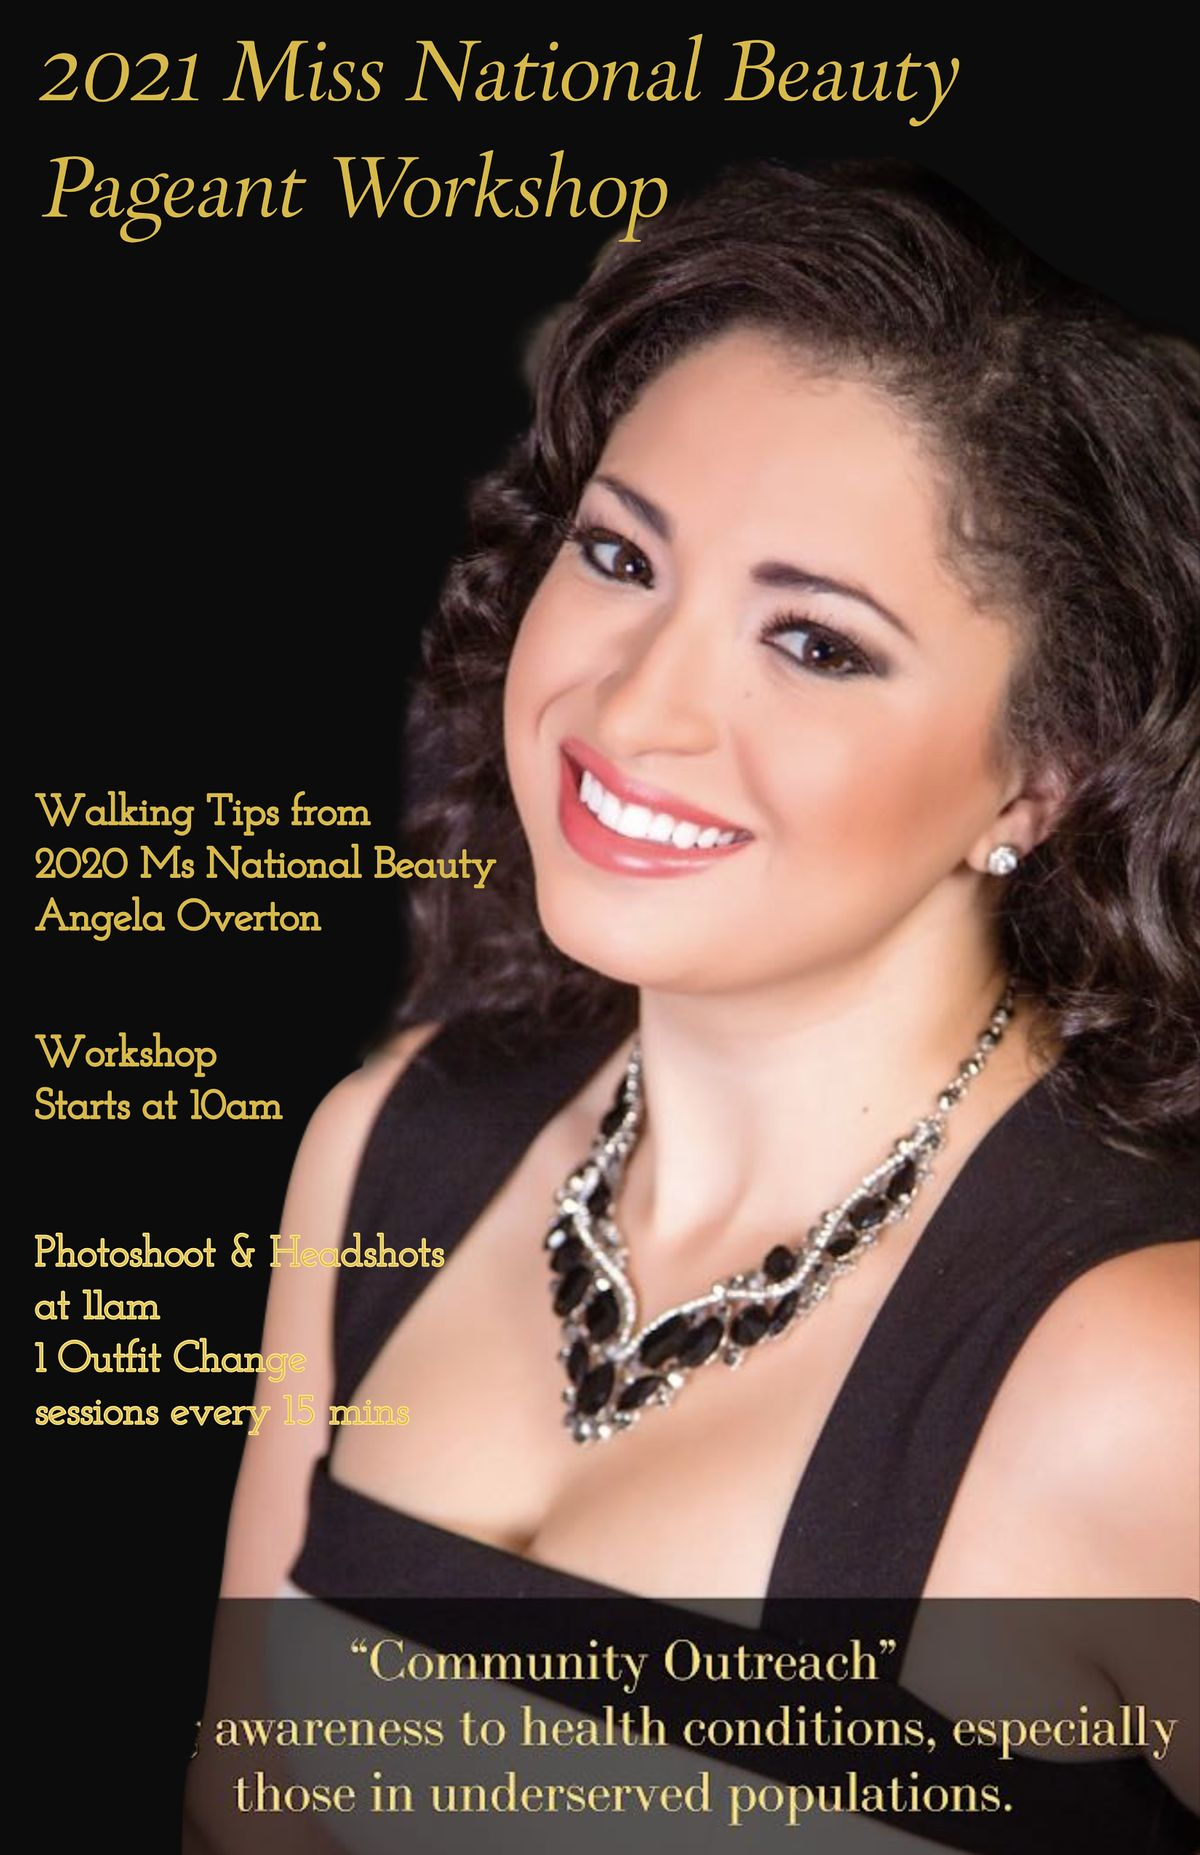 Pageant Workshop and Photoshoot